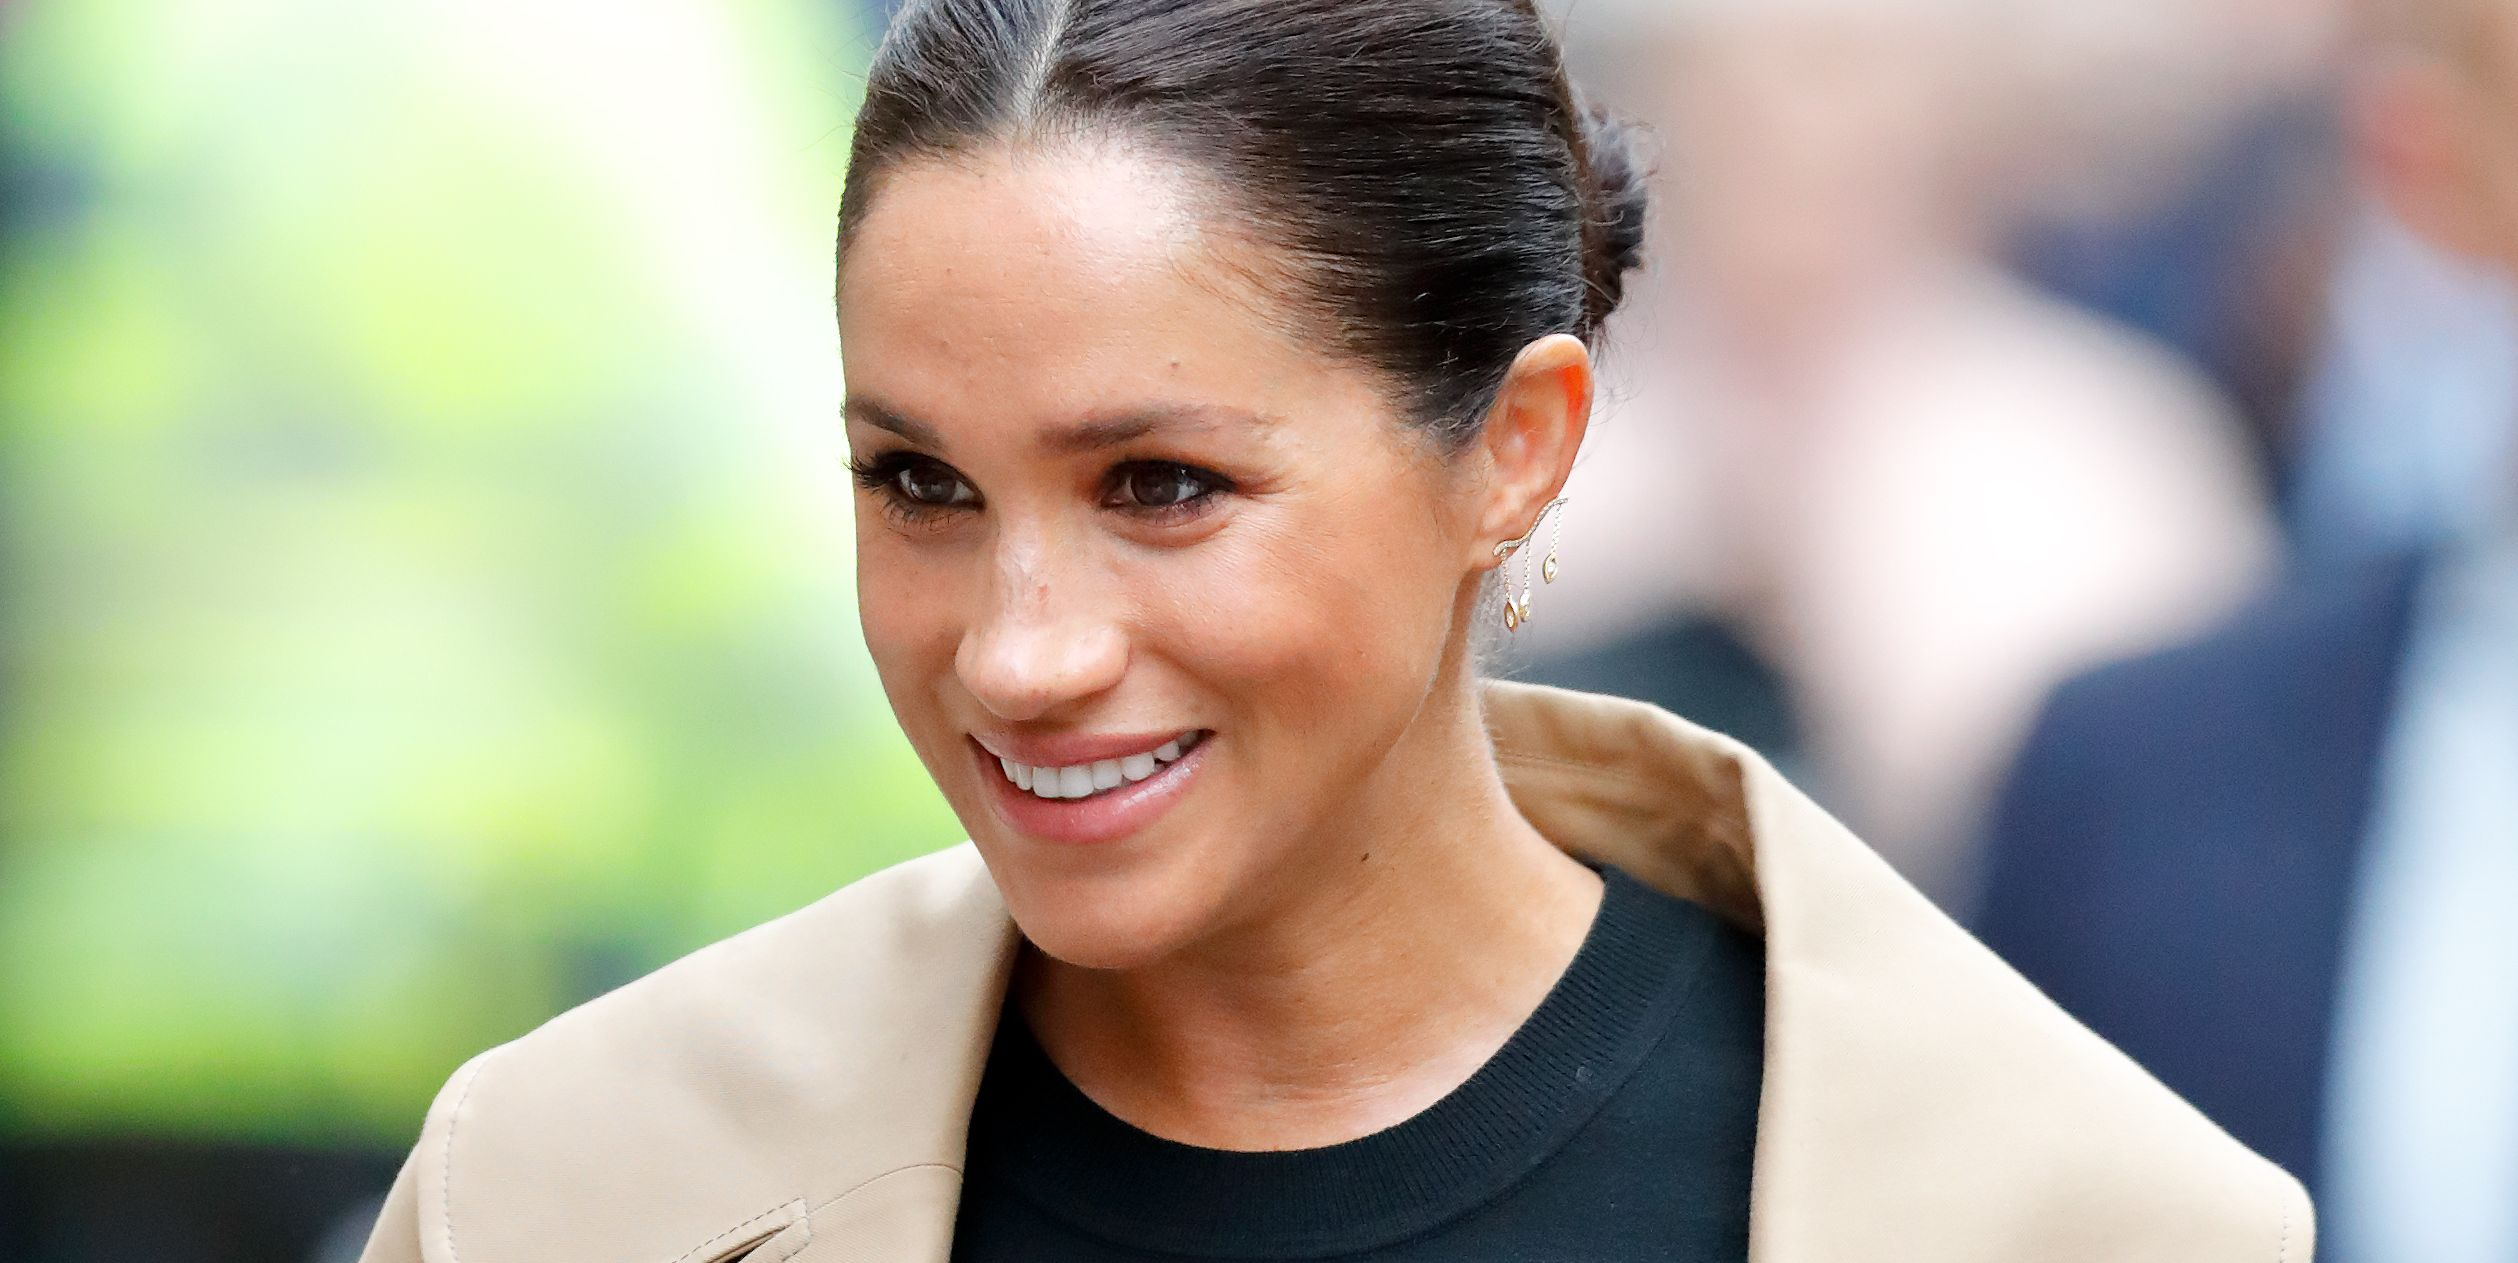 Why Meghan Markle Has Worn Neutral Palettes, Black and Muted Colors to Her Royal Engagements